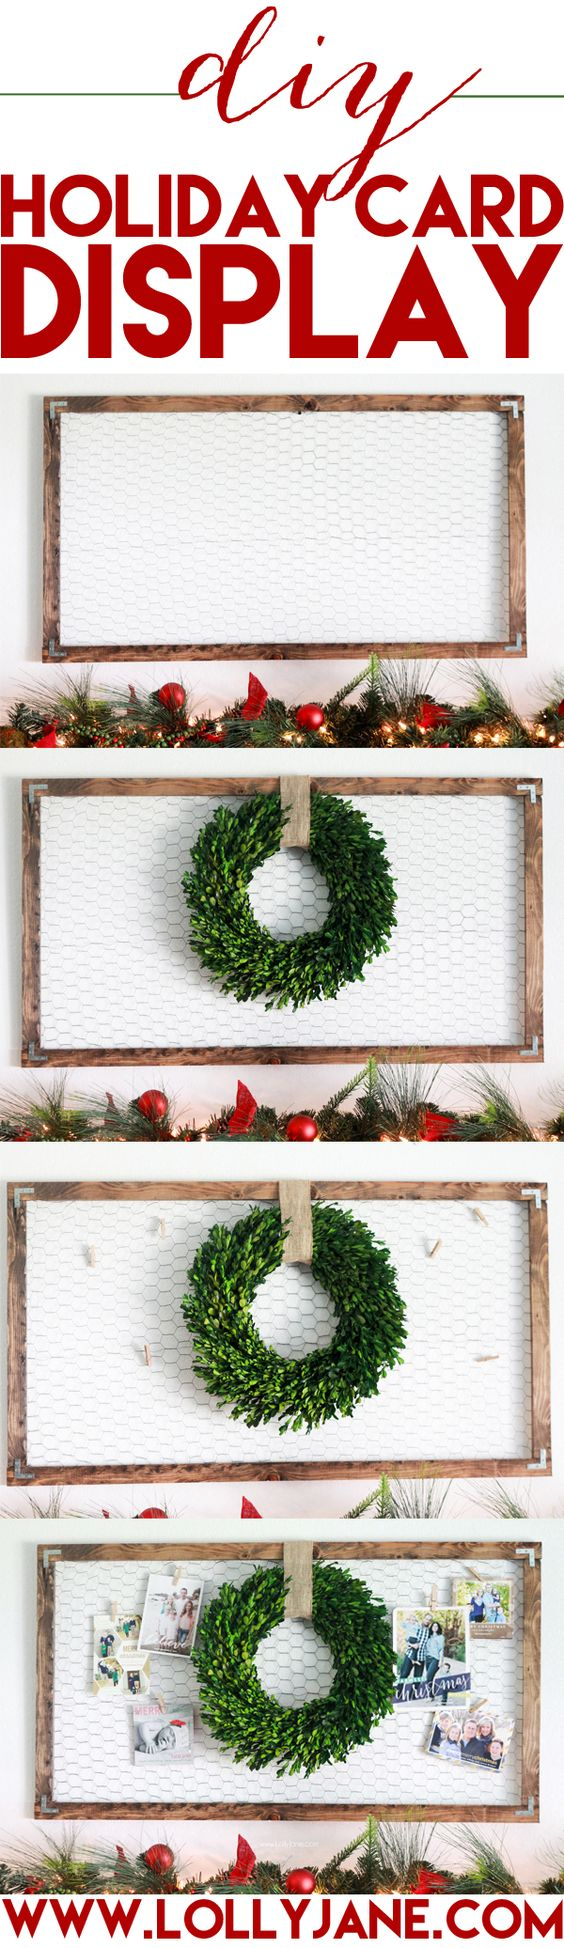 DIY holiday card display | So easy to make this adorable chicken wire frame with a few screws and L brackets!! Get the quick how to on www.lollyjane.com